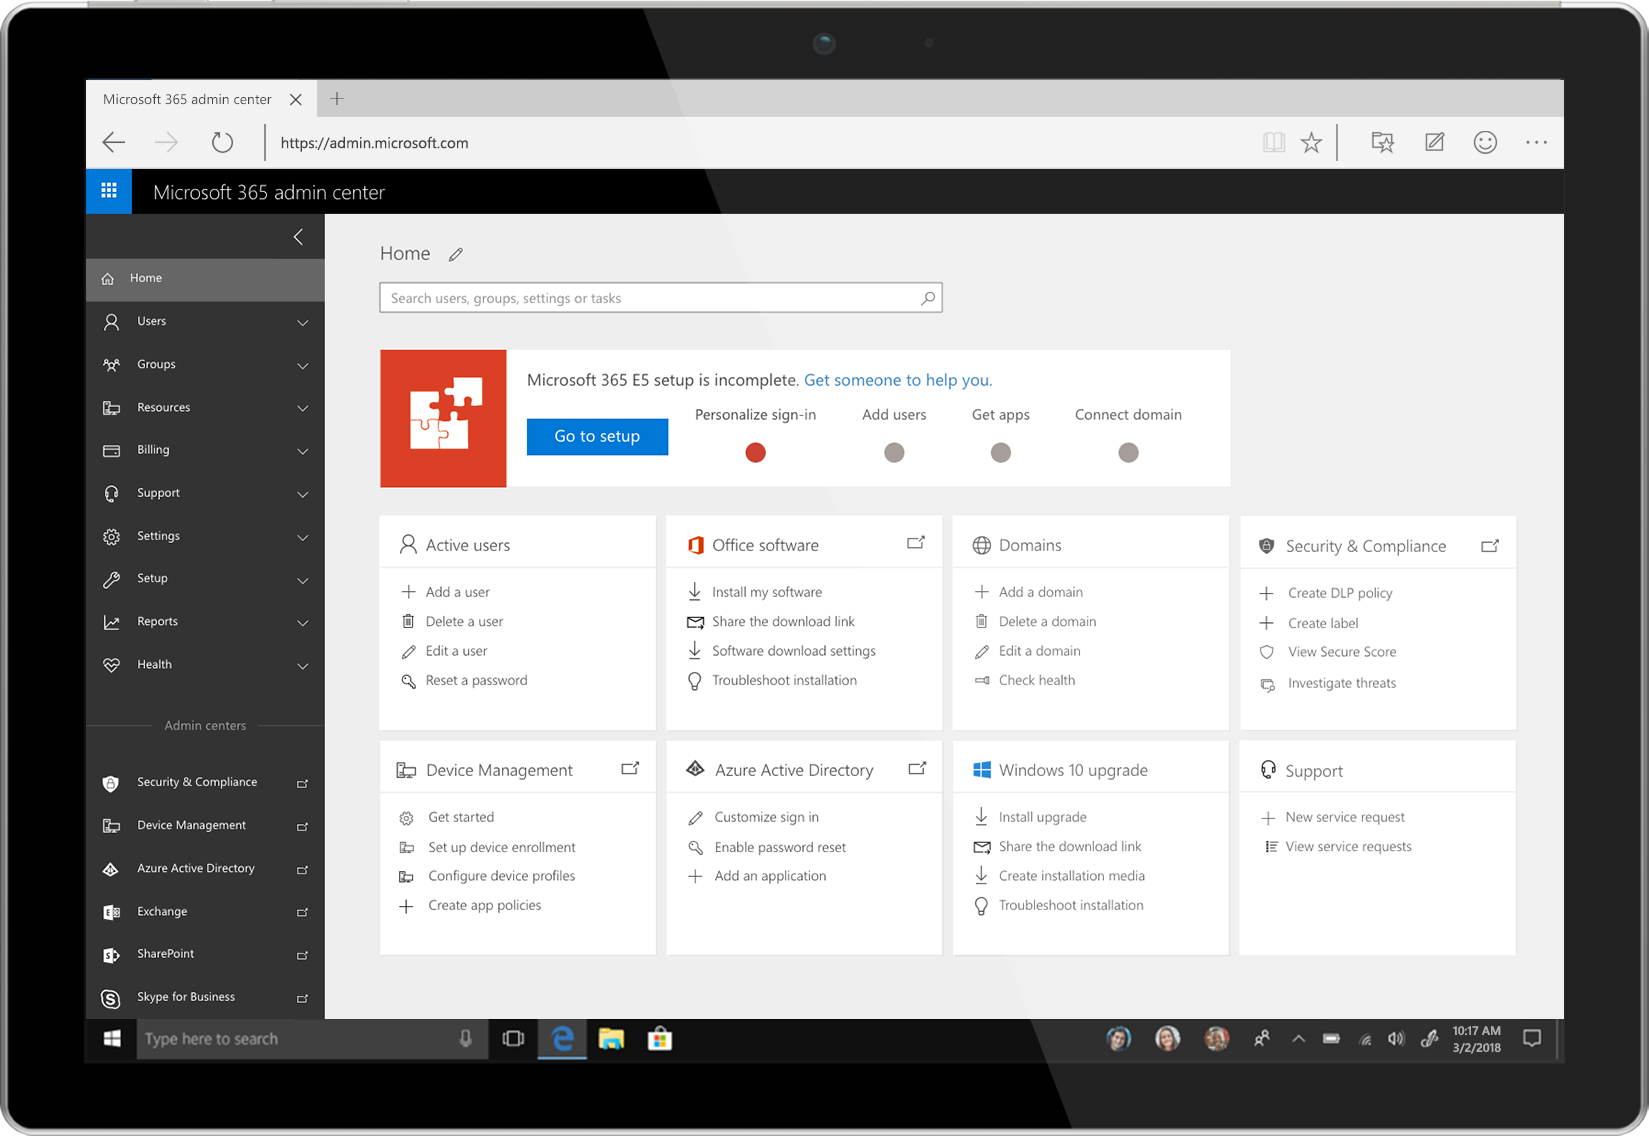 Image of a tablet showing the Microsoft 365 admin center.